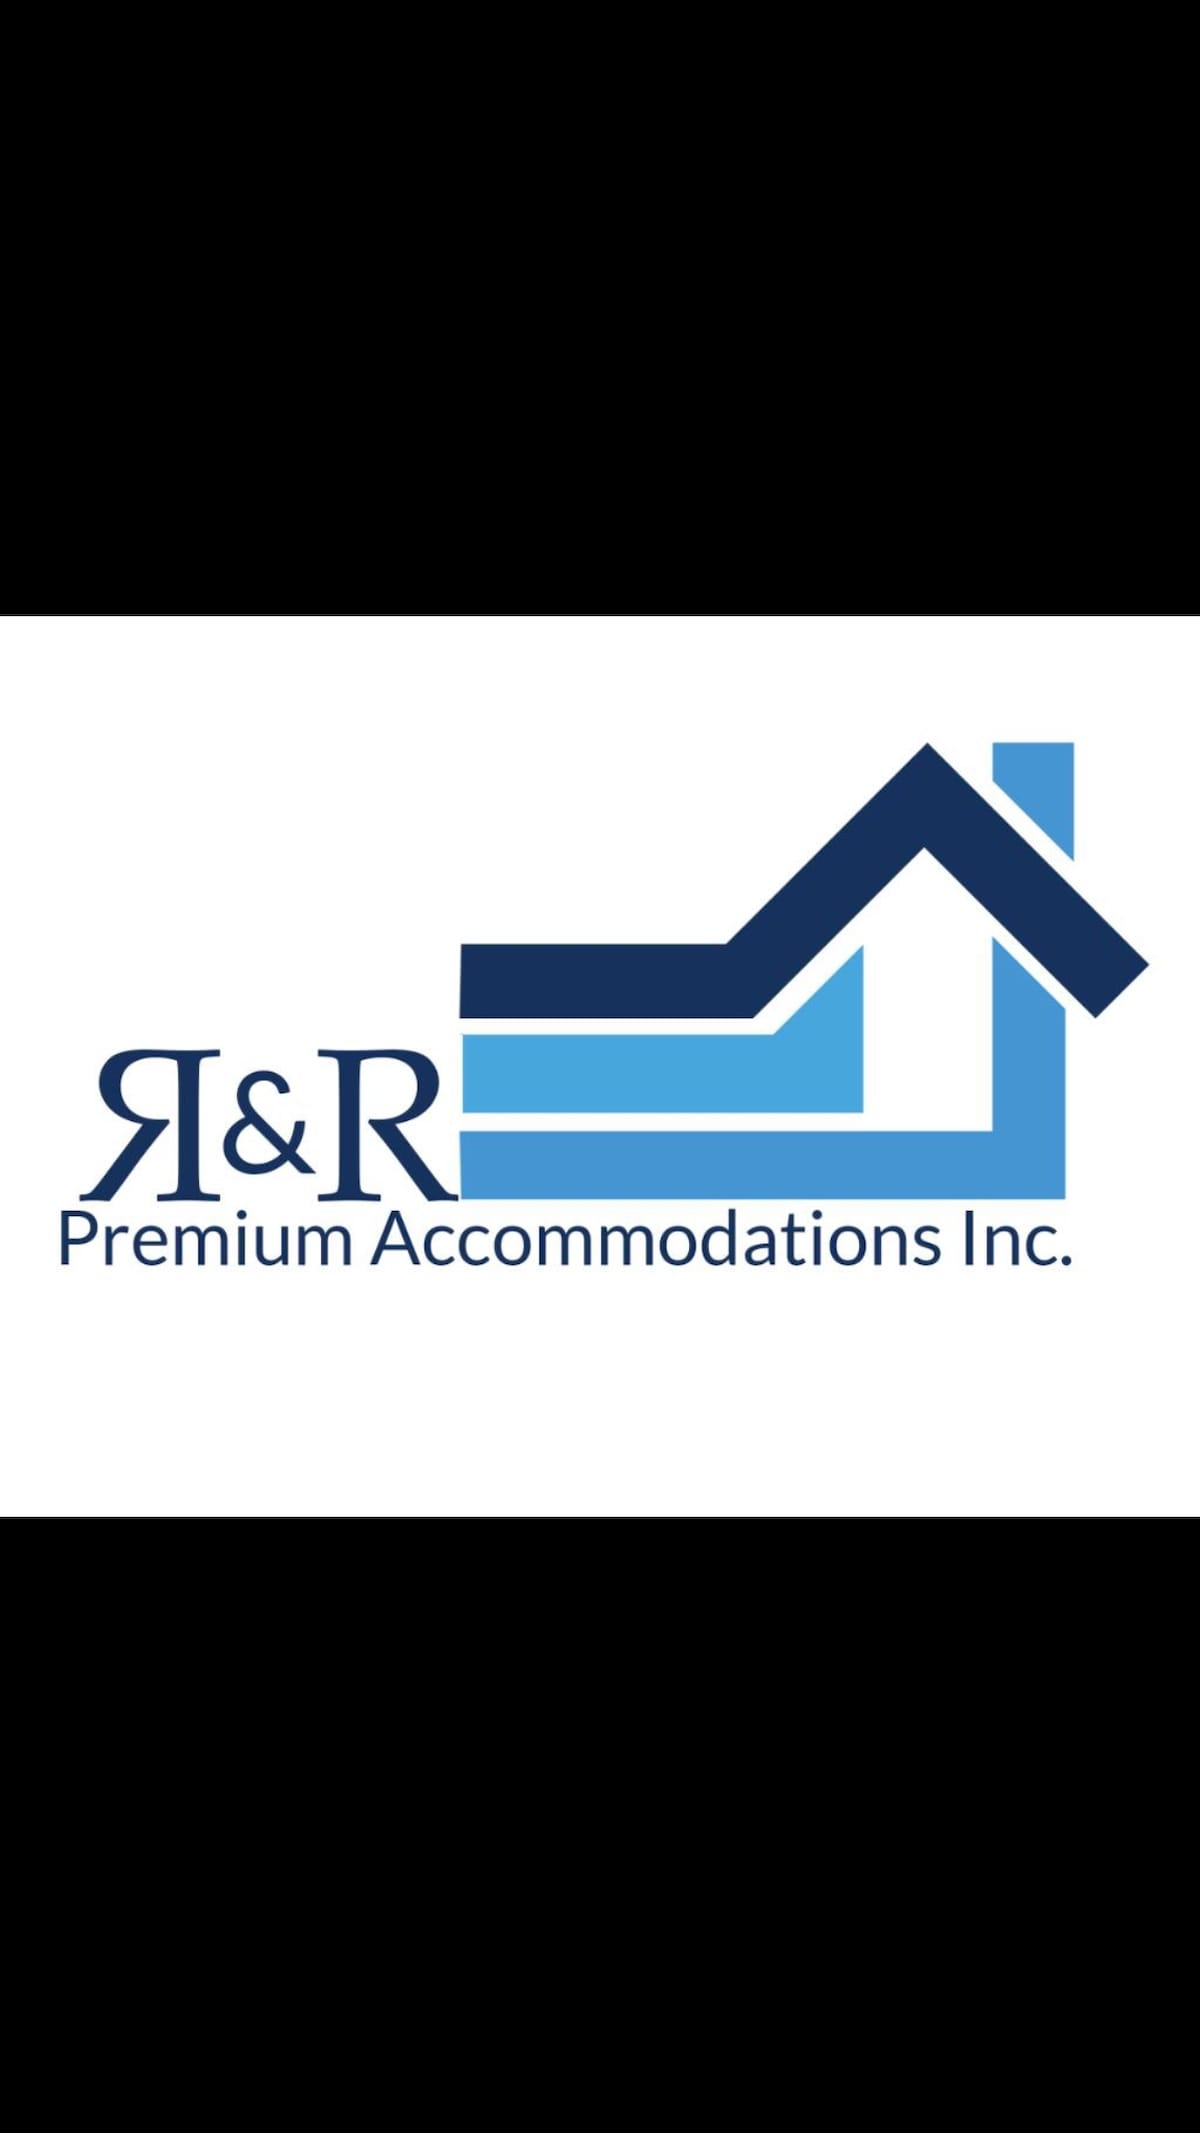 Premium Accommodations, Inc. From Pembroke Pines, FL